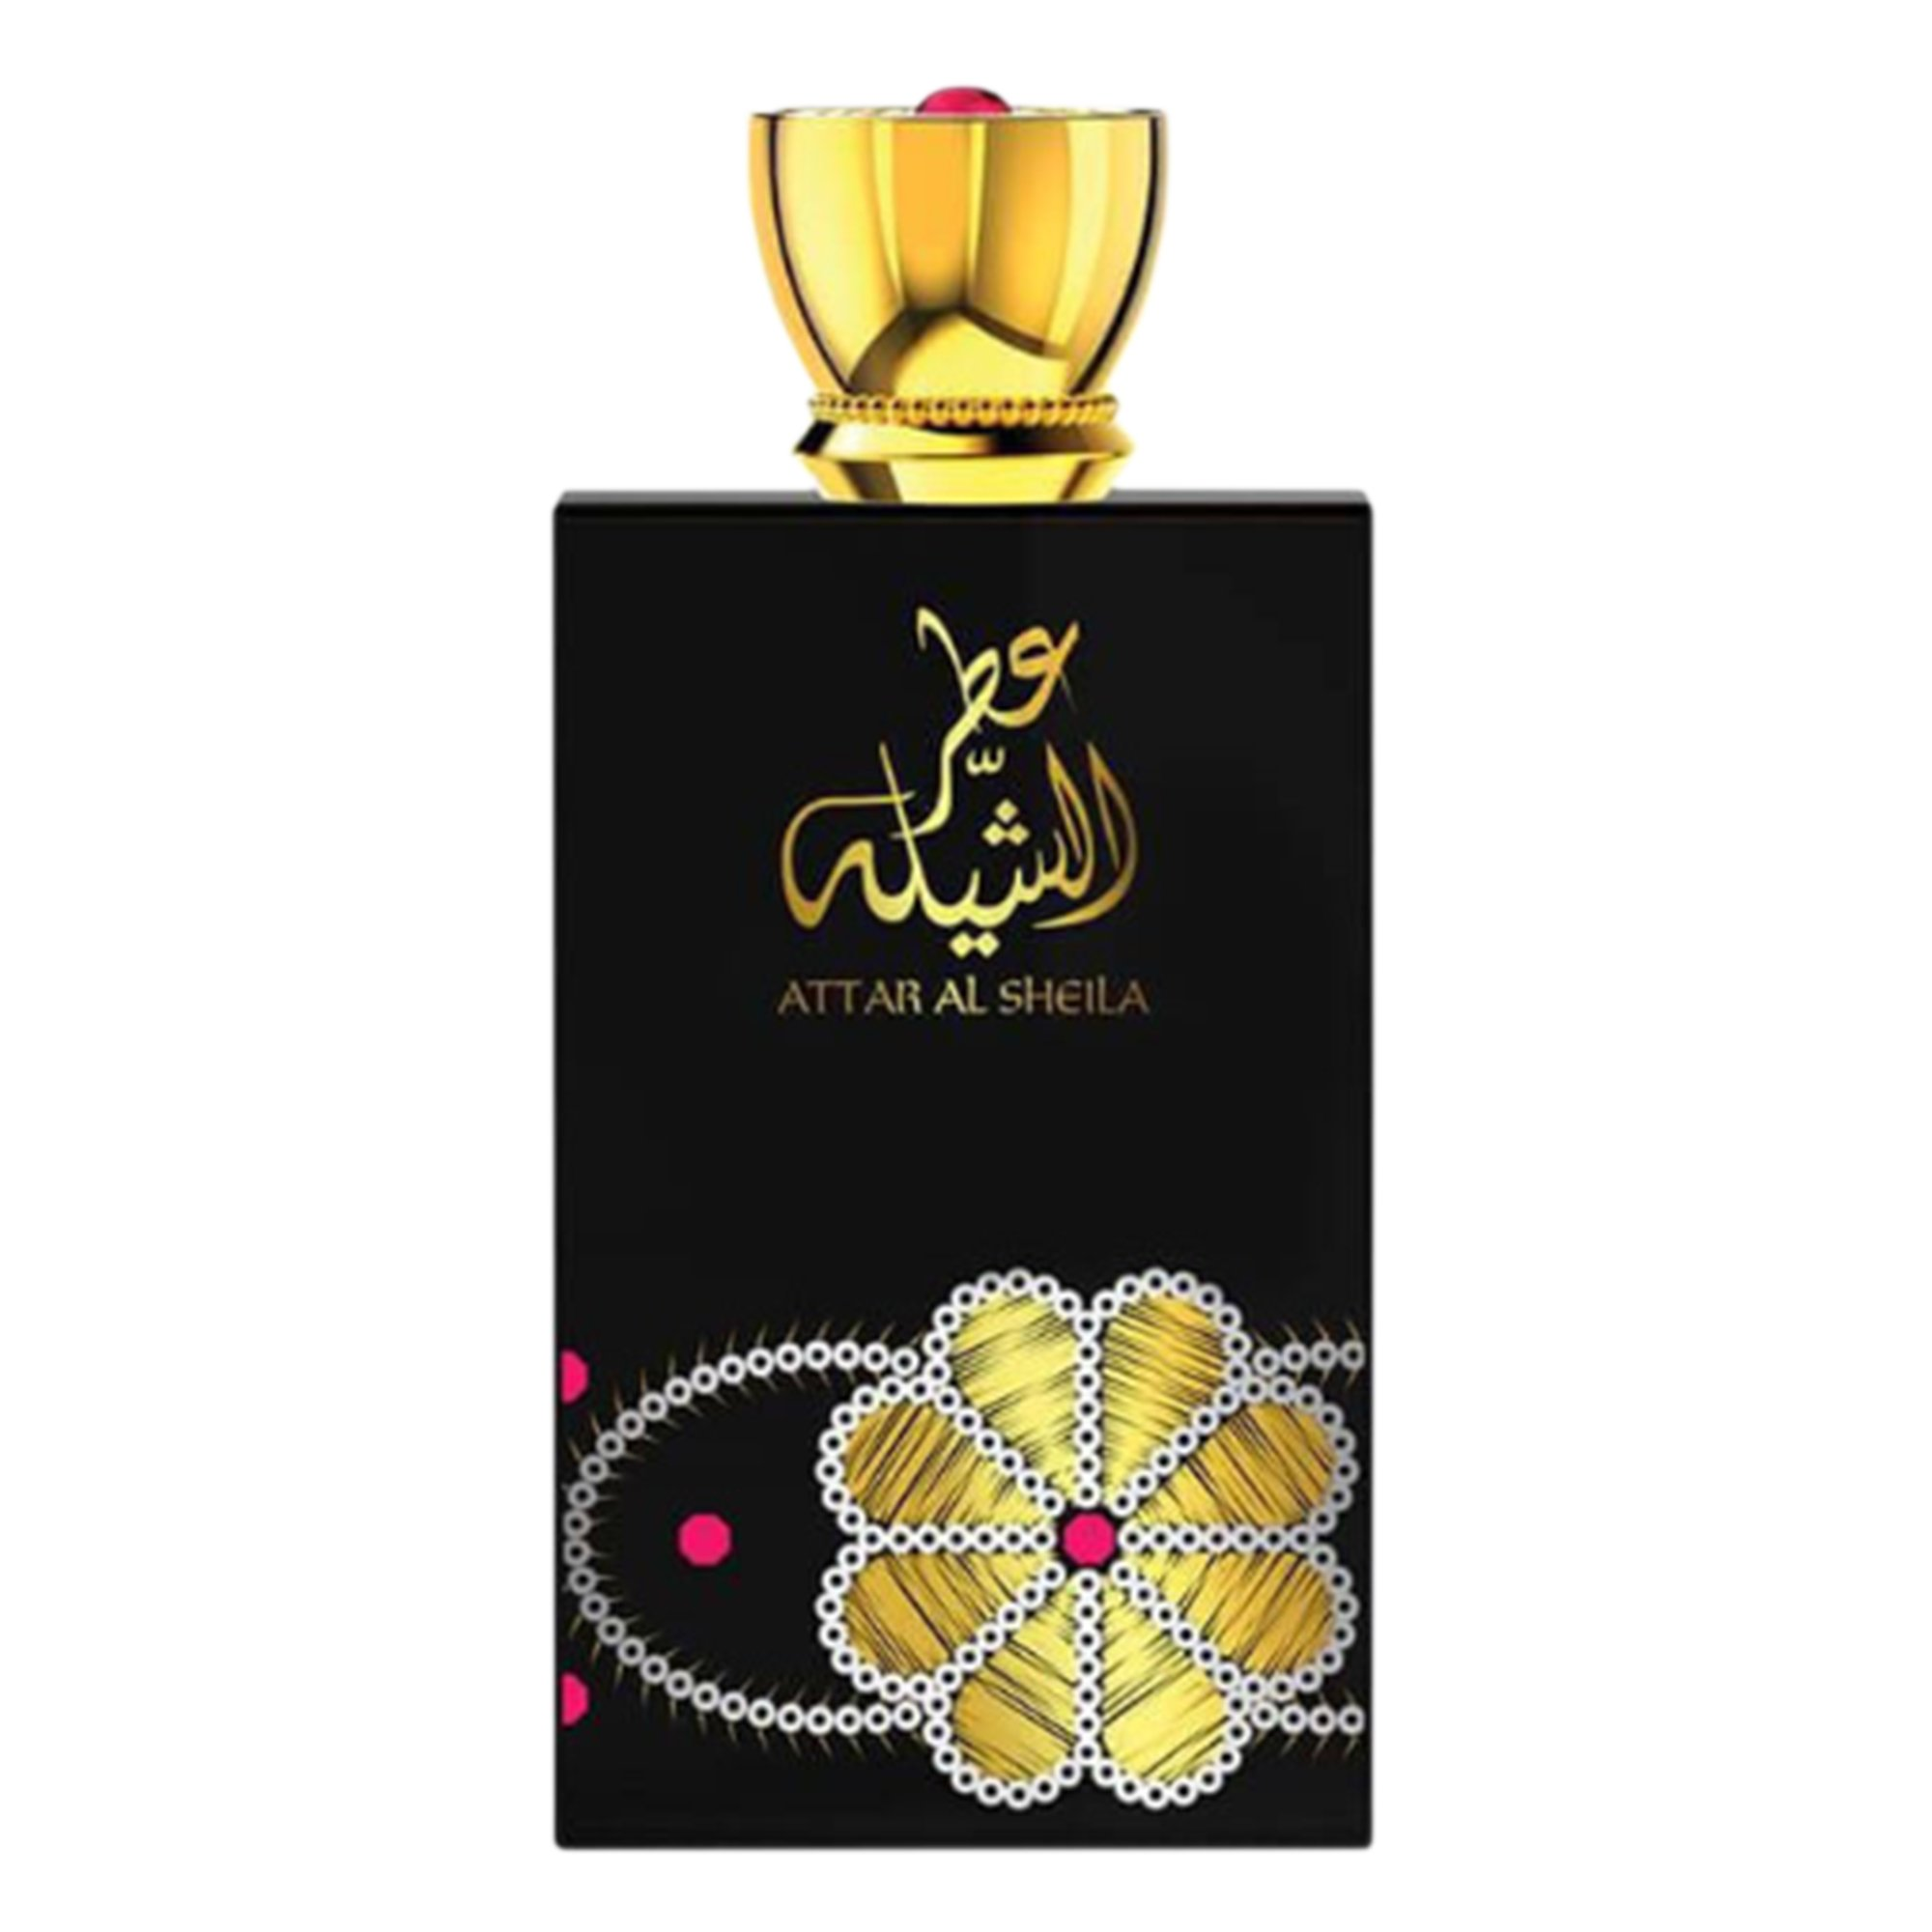 SWISSARABIAN Attar Al Sheila, an Eau De Parfum Oud for Women with Sultry Honey Suckle, Freesia, Vanilla, Rosewood, Patchouli and Leather by Perfume Artisan Swiss Arabian